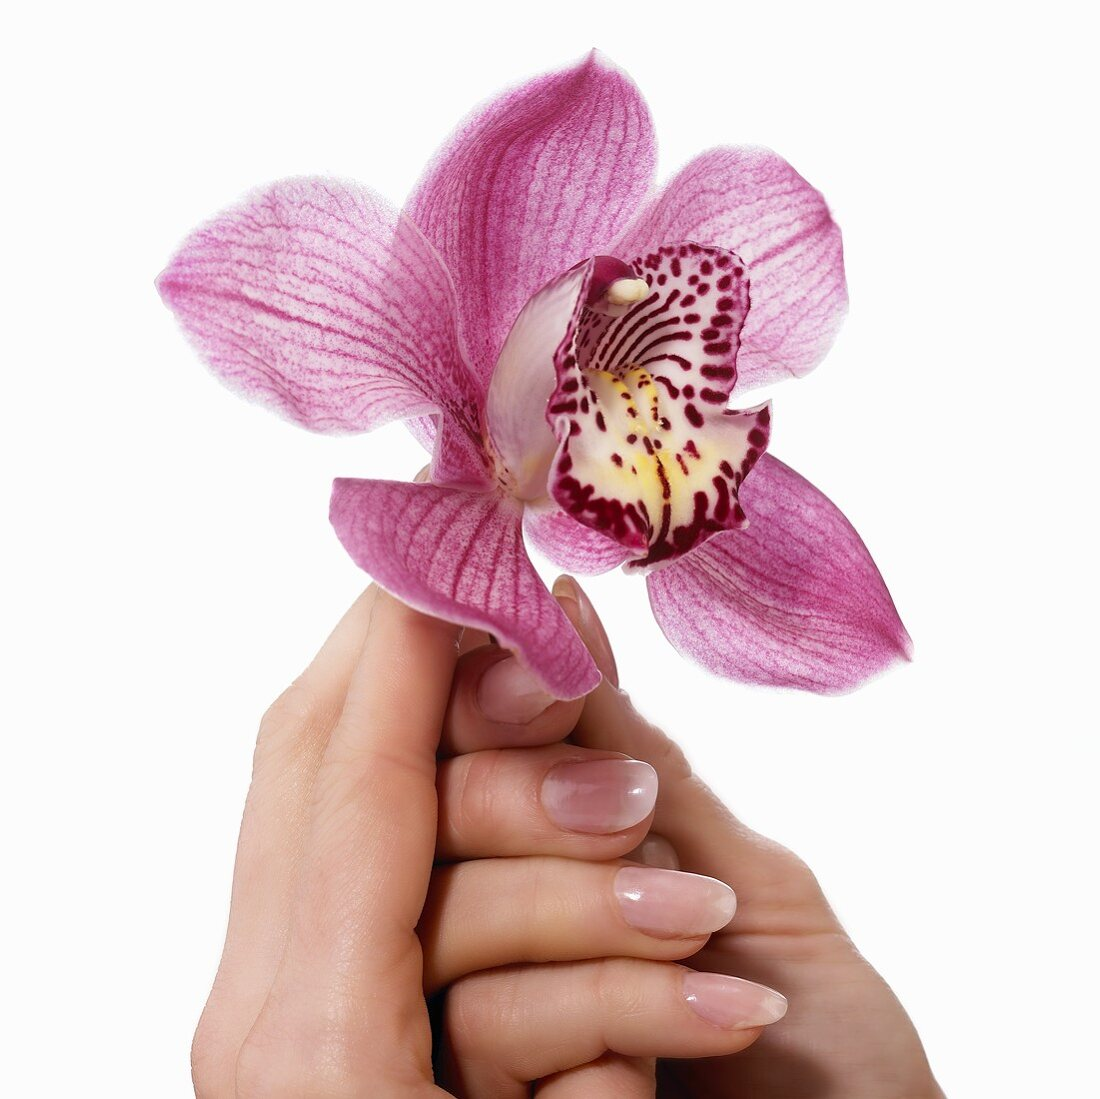 Hand holding orchid